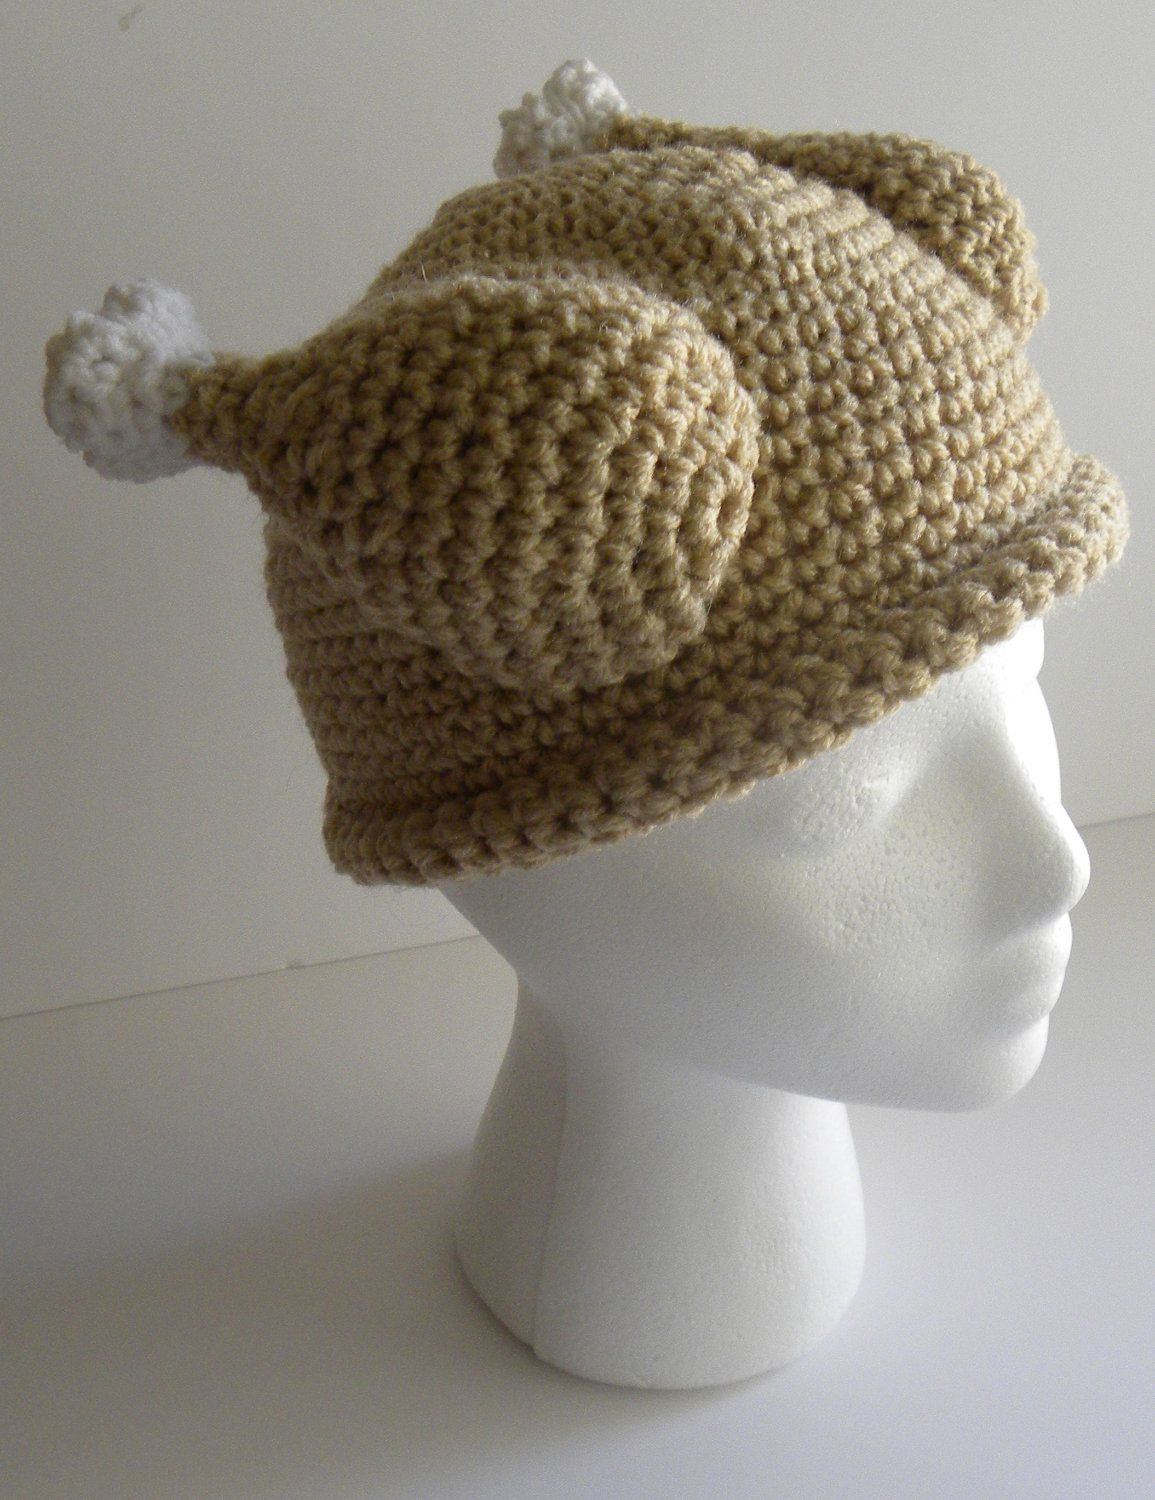 172c5661533 CROCHET PATTERN Crocheted Turkey Dinner Hat w permission to sell finished  items.  4.50